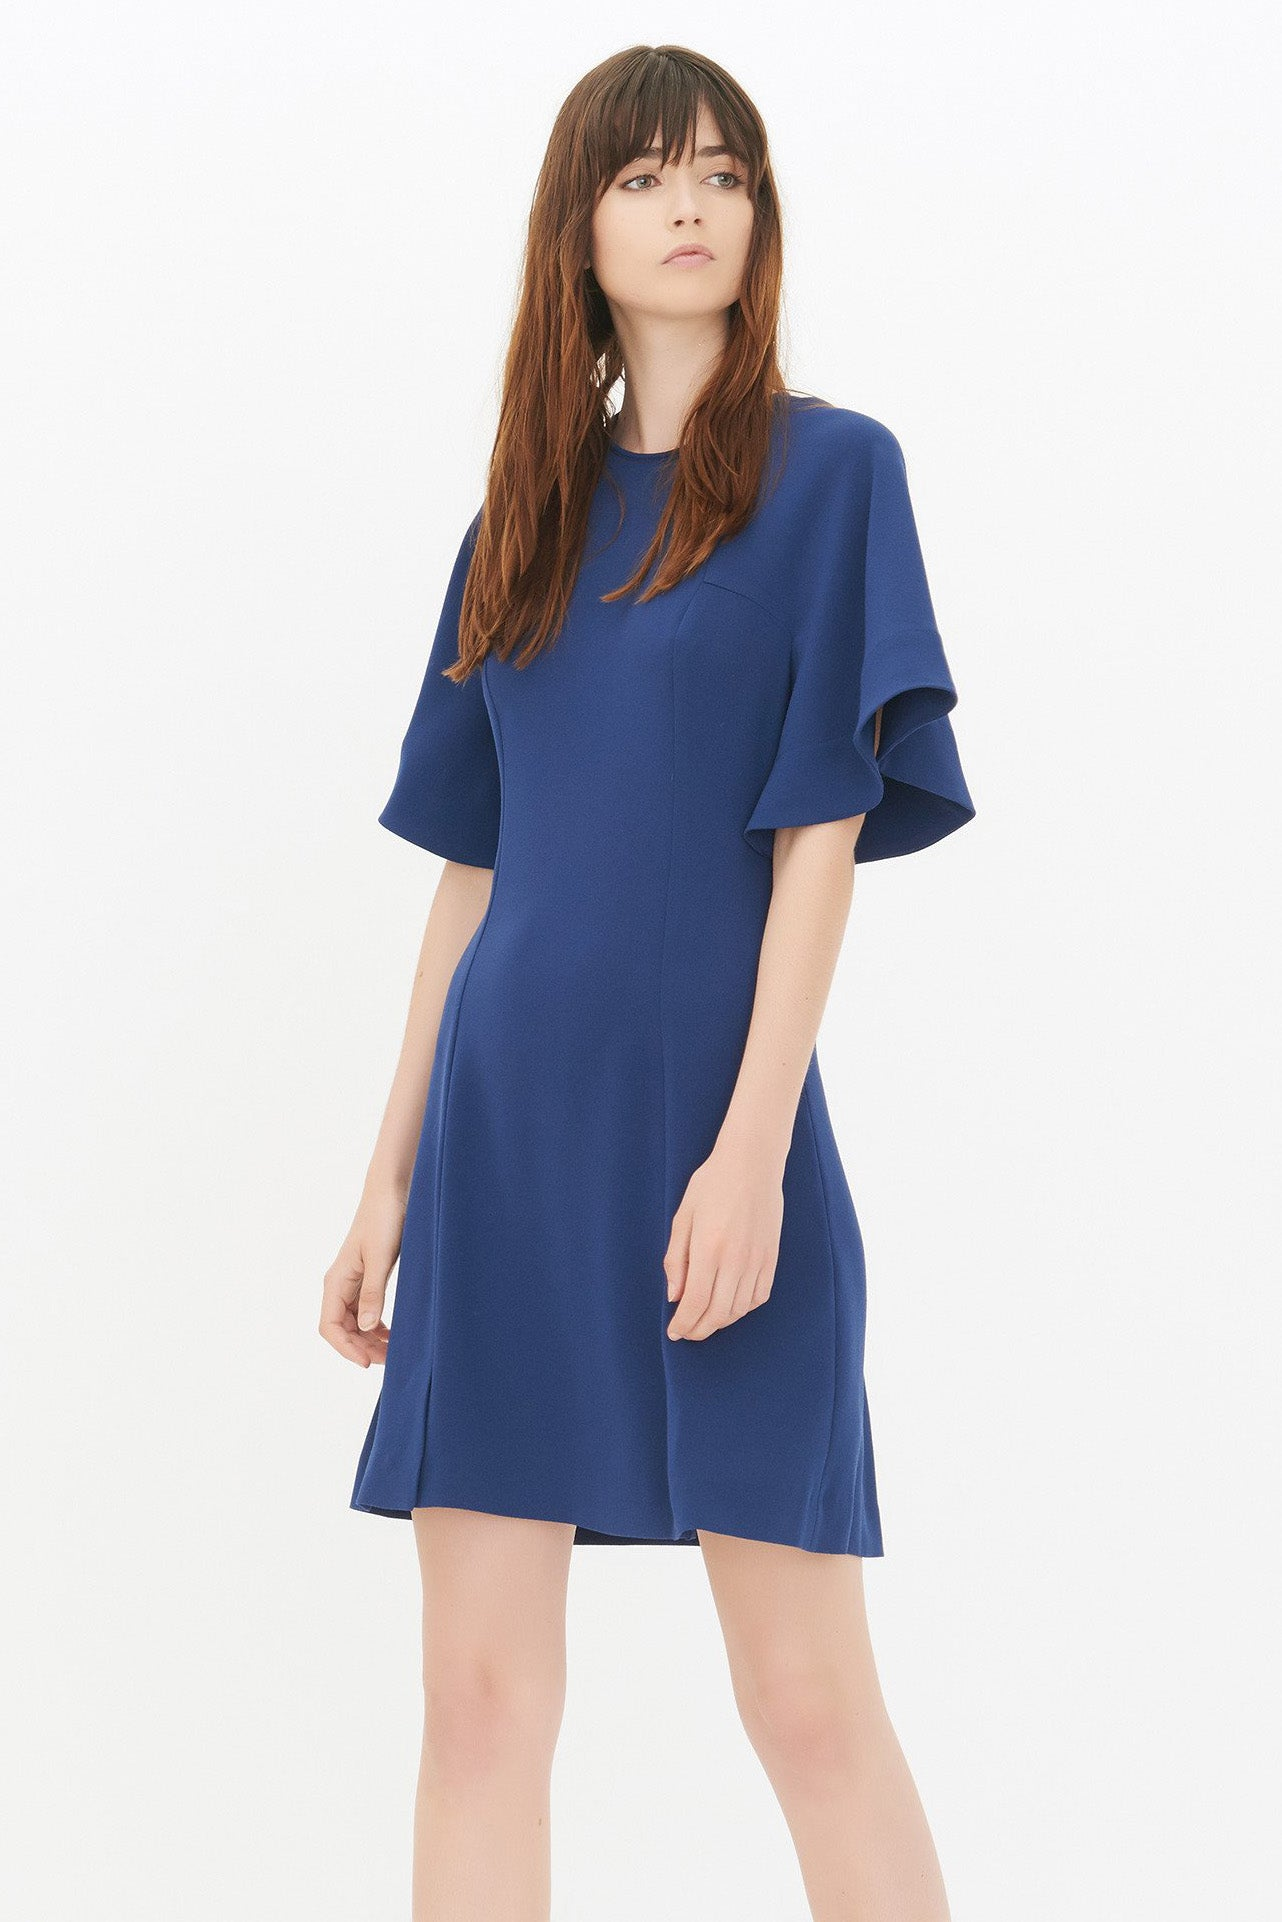 Chicloth Blue Loose Sleeve Princess Dress - Chicloth